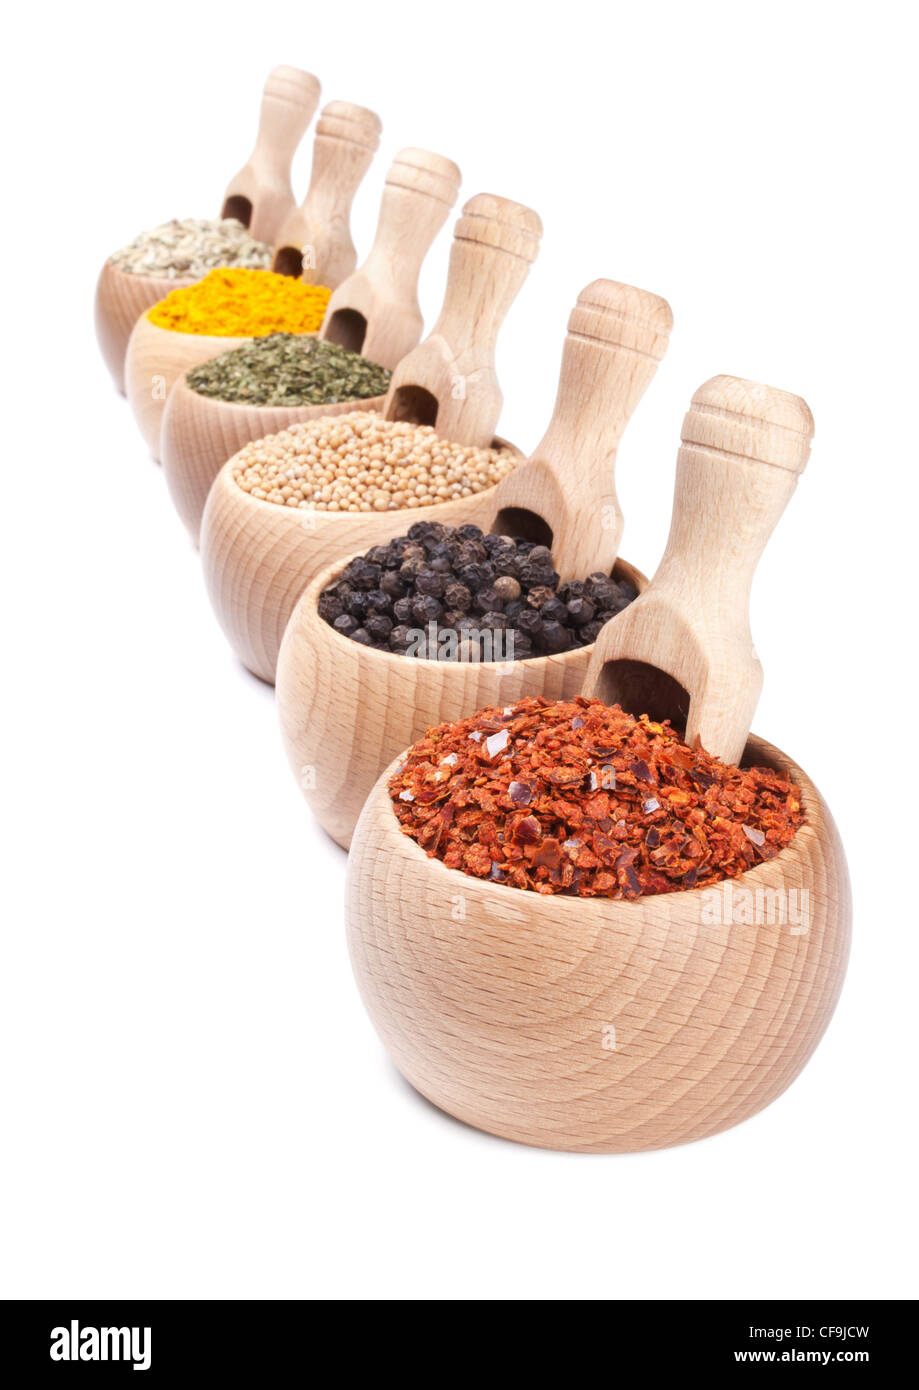 Row of wooden bowls with spices in them. Diminishing perspective - Stock Image